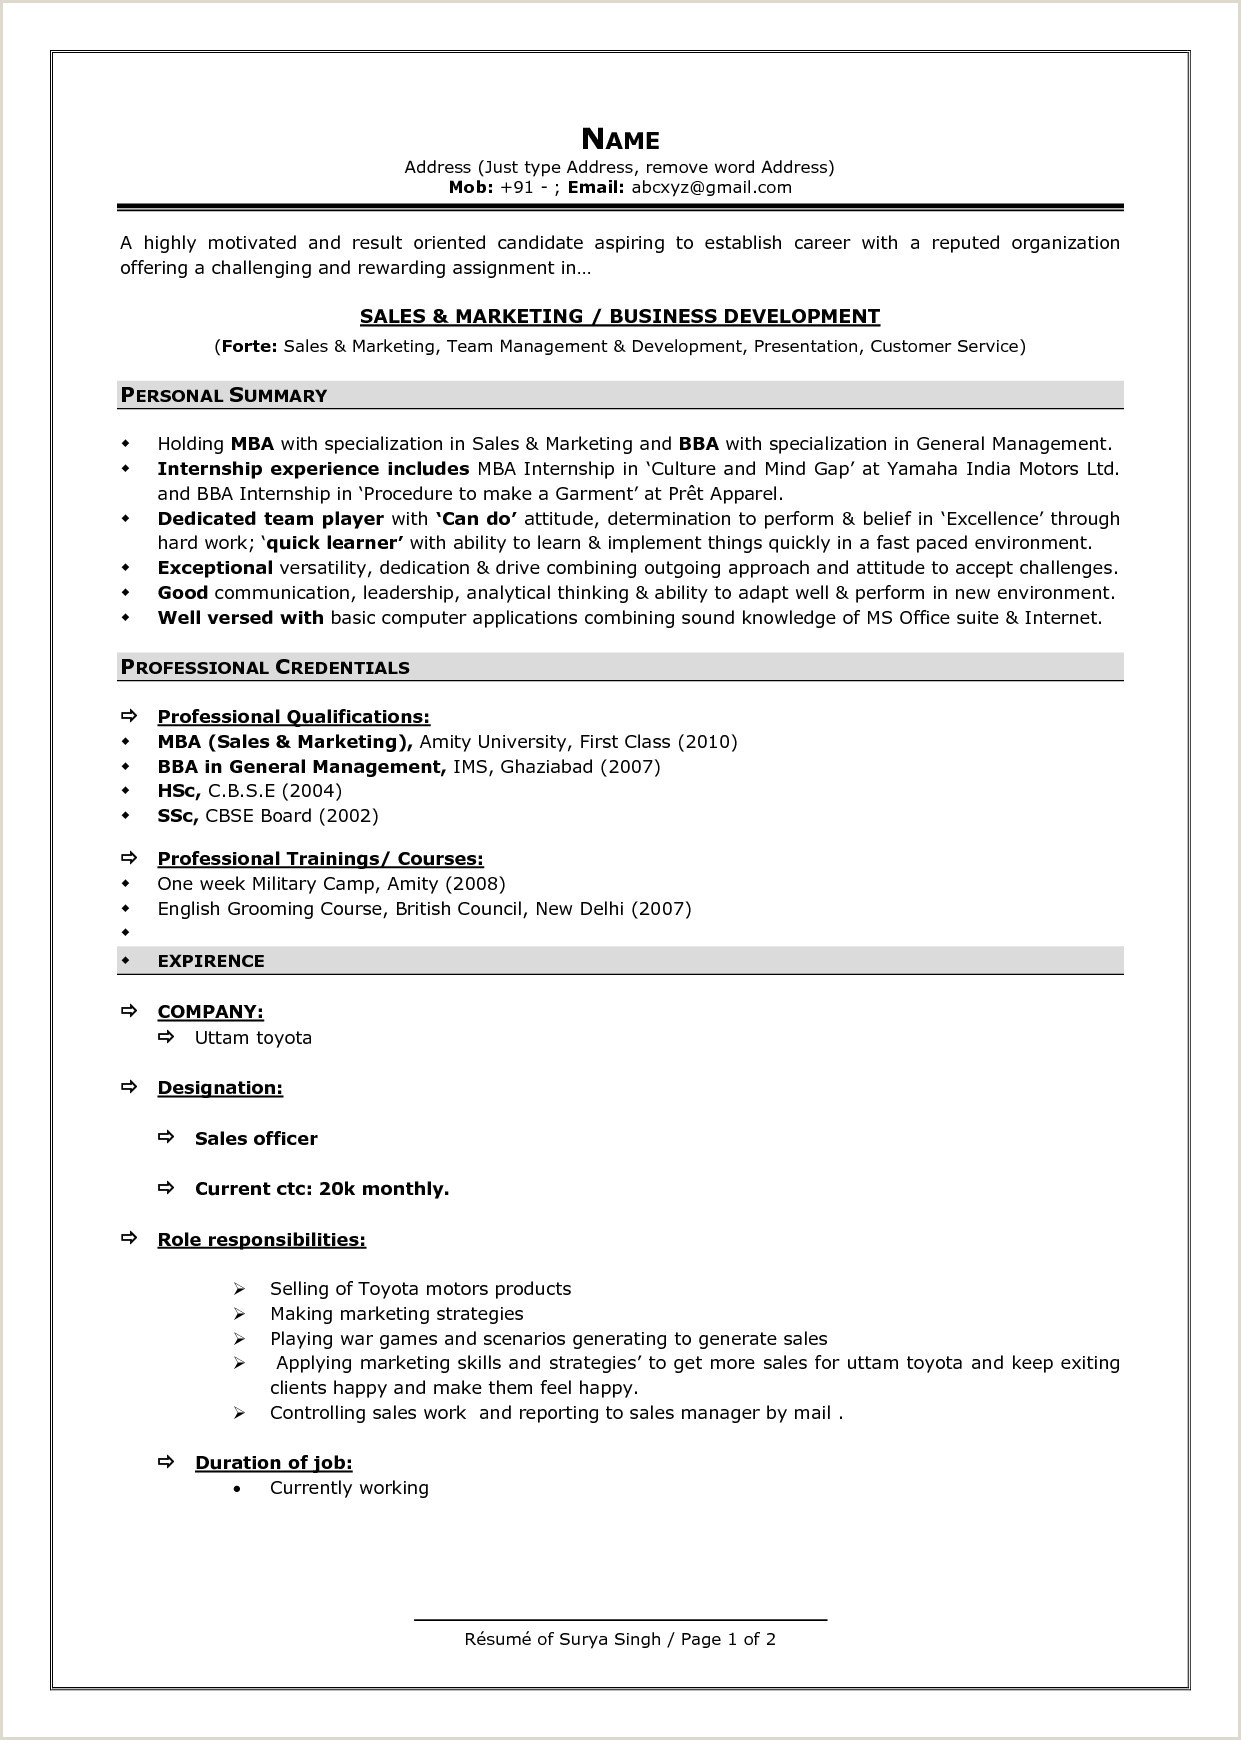 Bba Fresher Resume format Doc Resume format for Freshers Examples Mba Resume Template